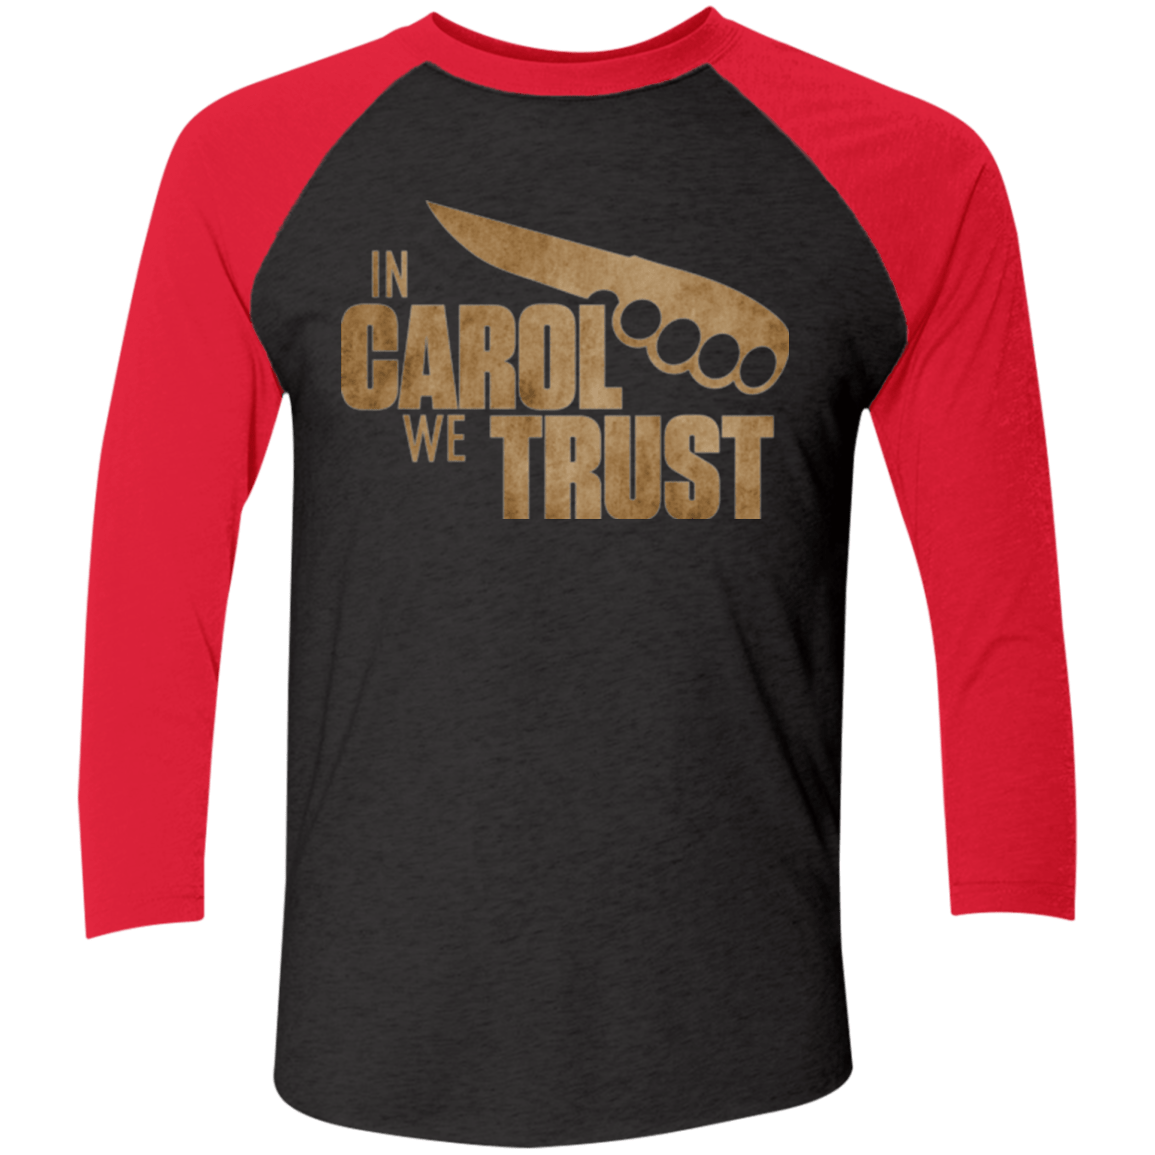 T-Shirts Vintage Black/Vintage Red / X-Small In Carol We Trust Triblend 3/4 Sleeve